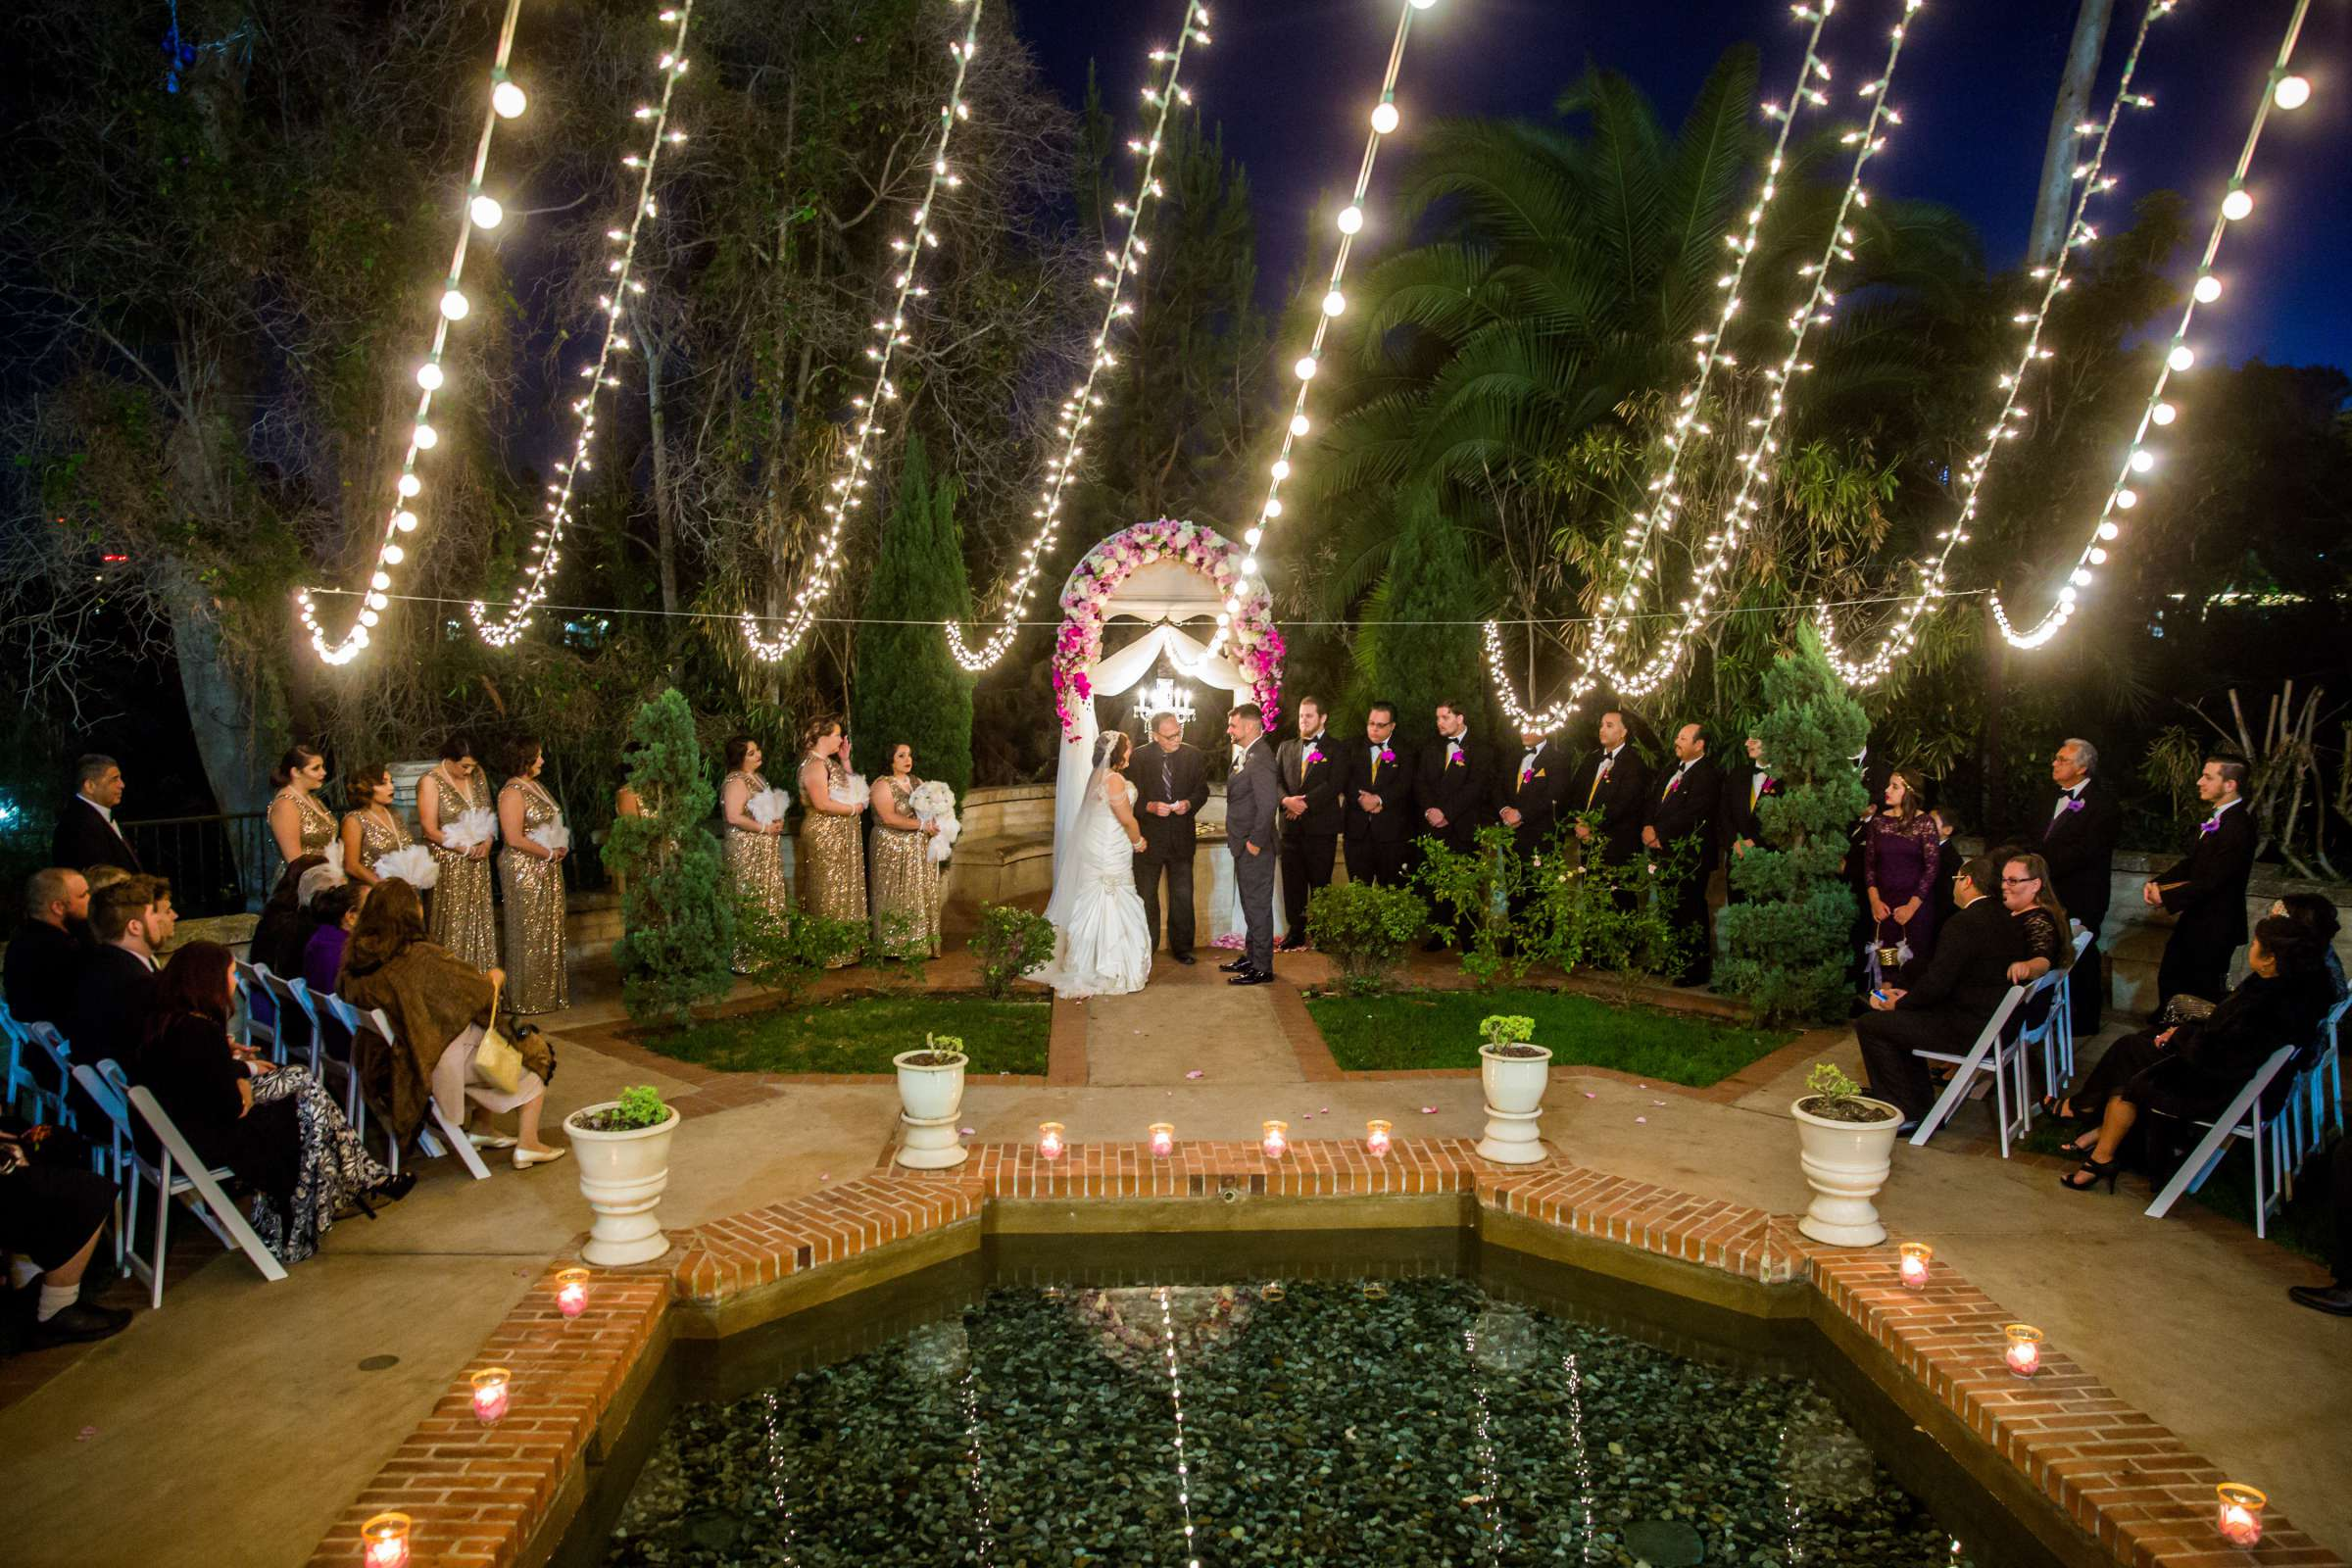 The Prado Wedding coordinated by Breezy Day Weddings, Aalis and Michael Wedding Photo #22 by True Photography